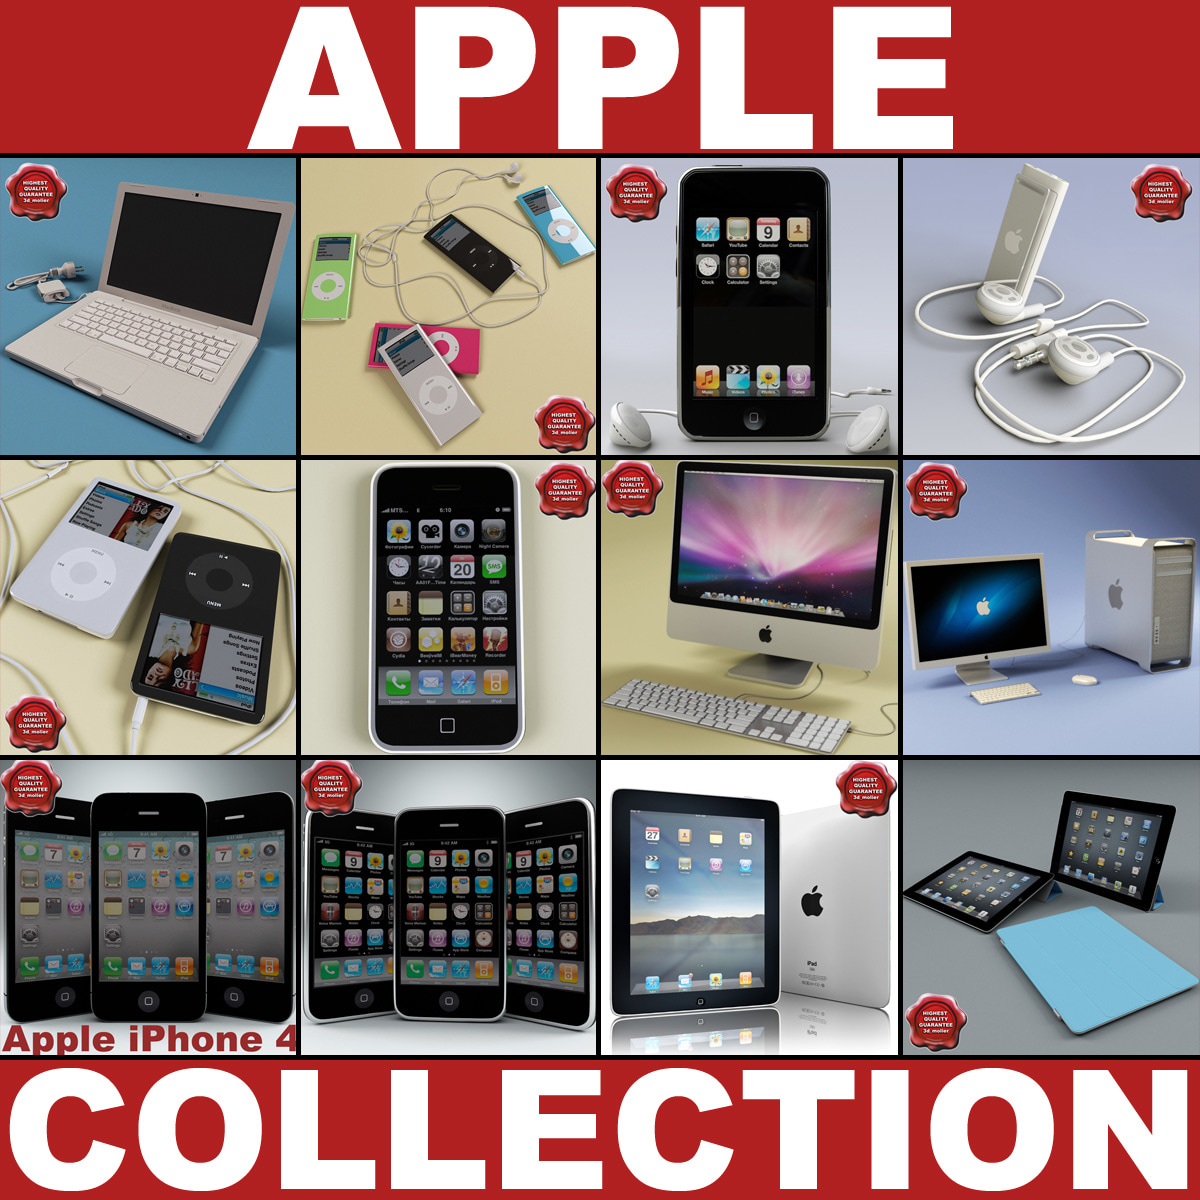 Apple_Big_Collection_000.jpg